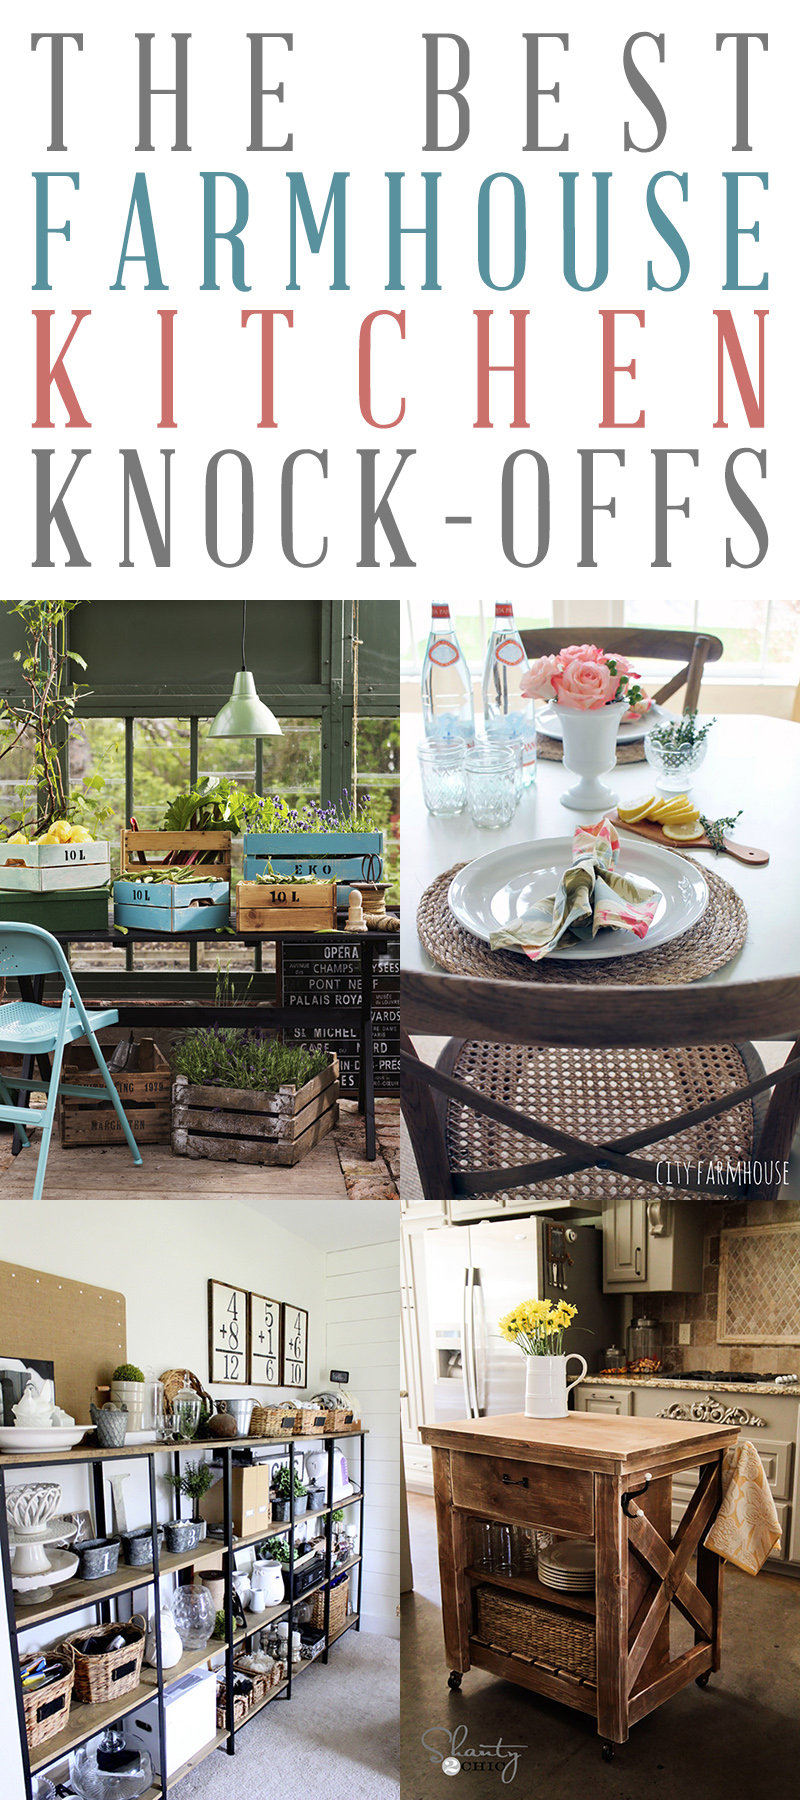 The Best Farmhouse Kitchen Pottery Barn Knock-Offs